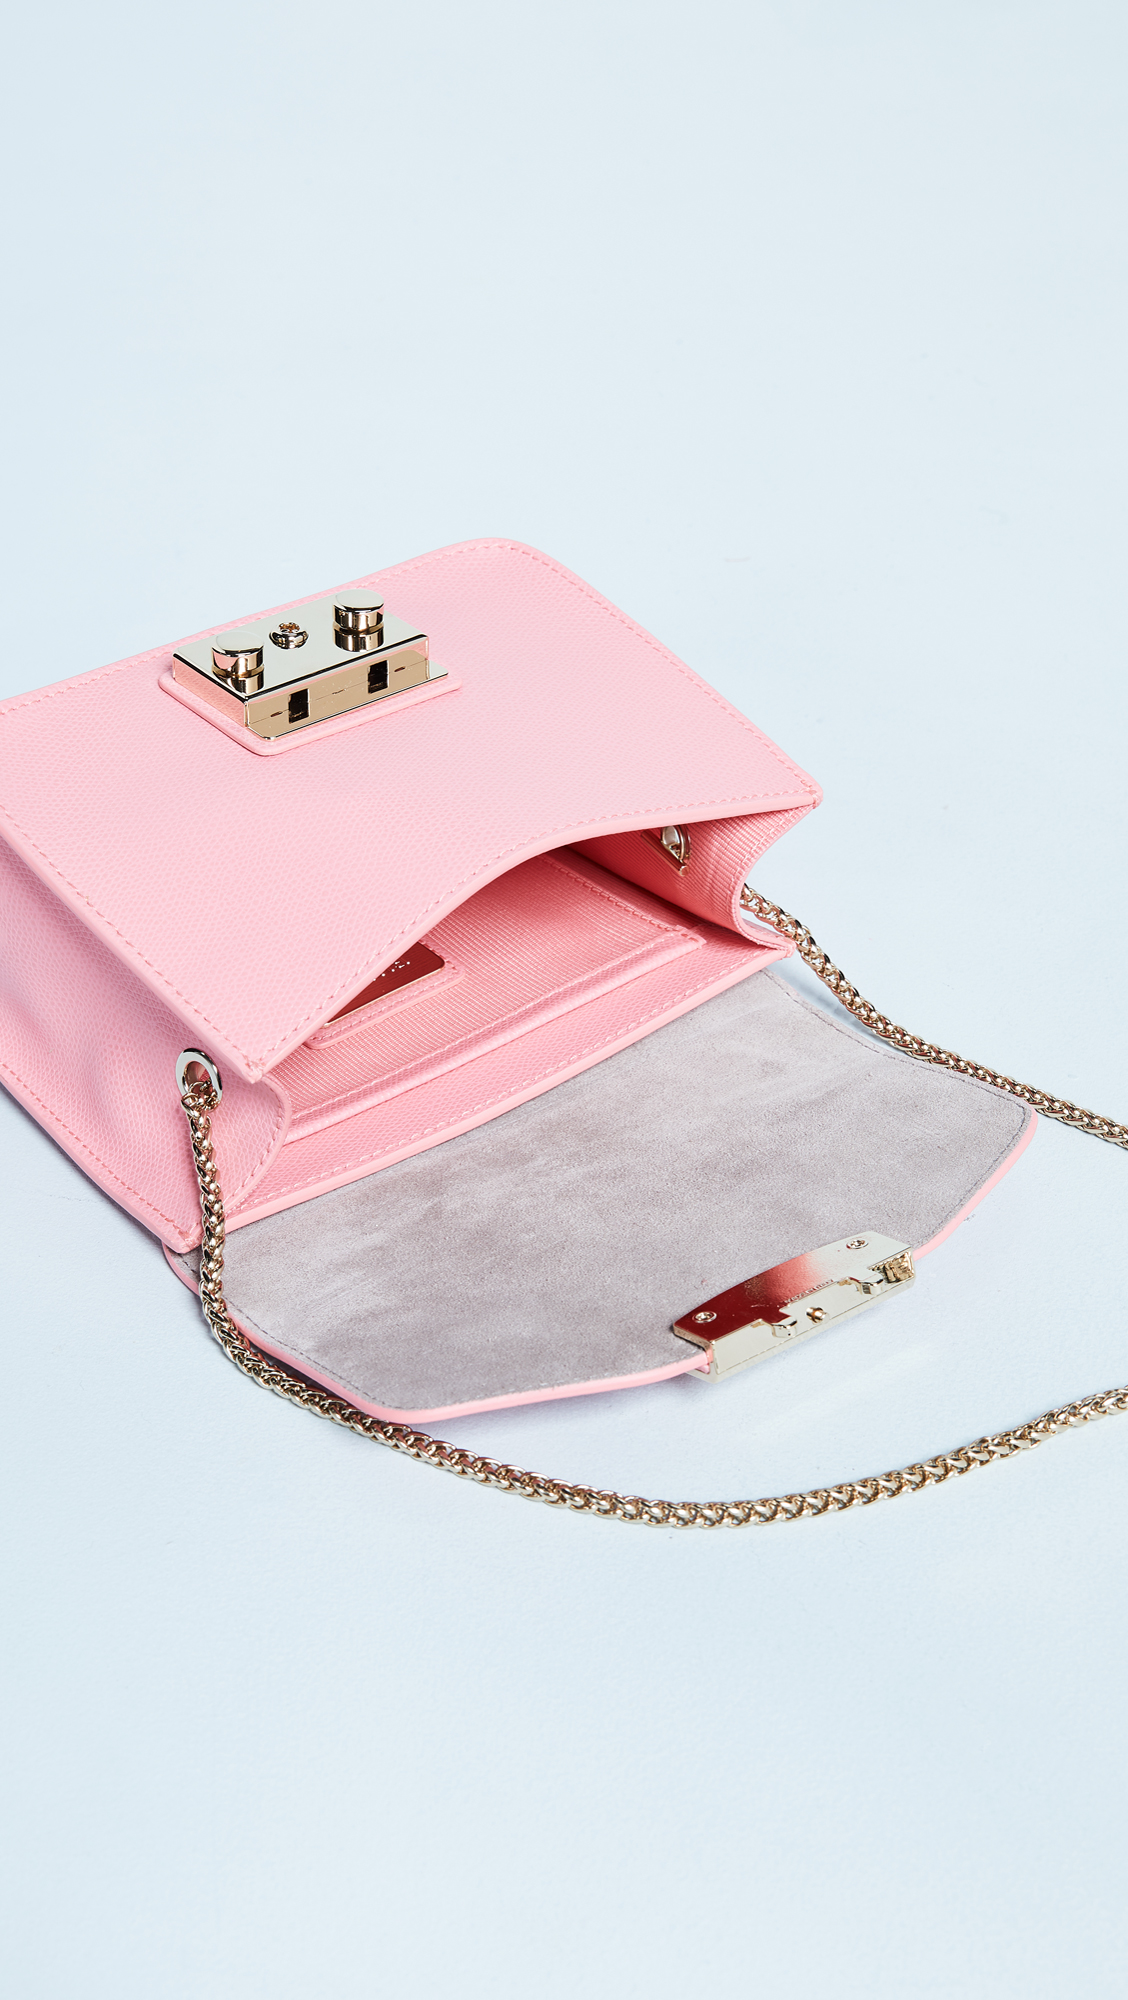 Furla Metropolis Mini Crossbody - Rosa Quarzo C的圖片搜尋結果